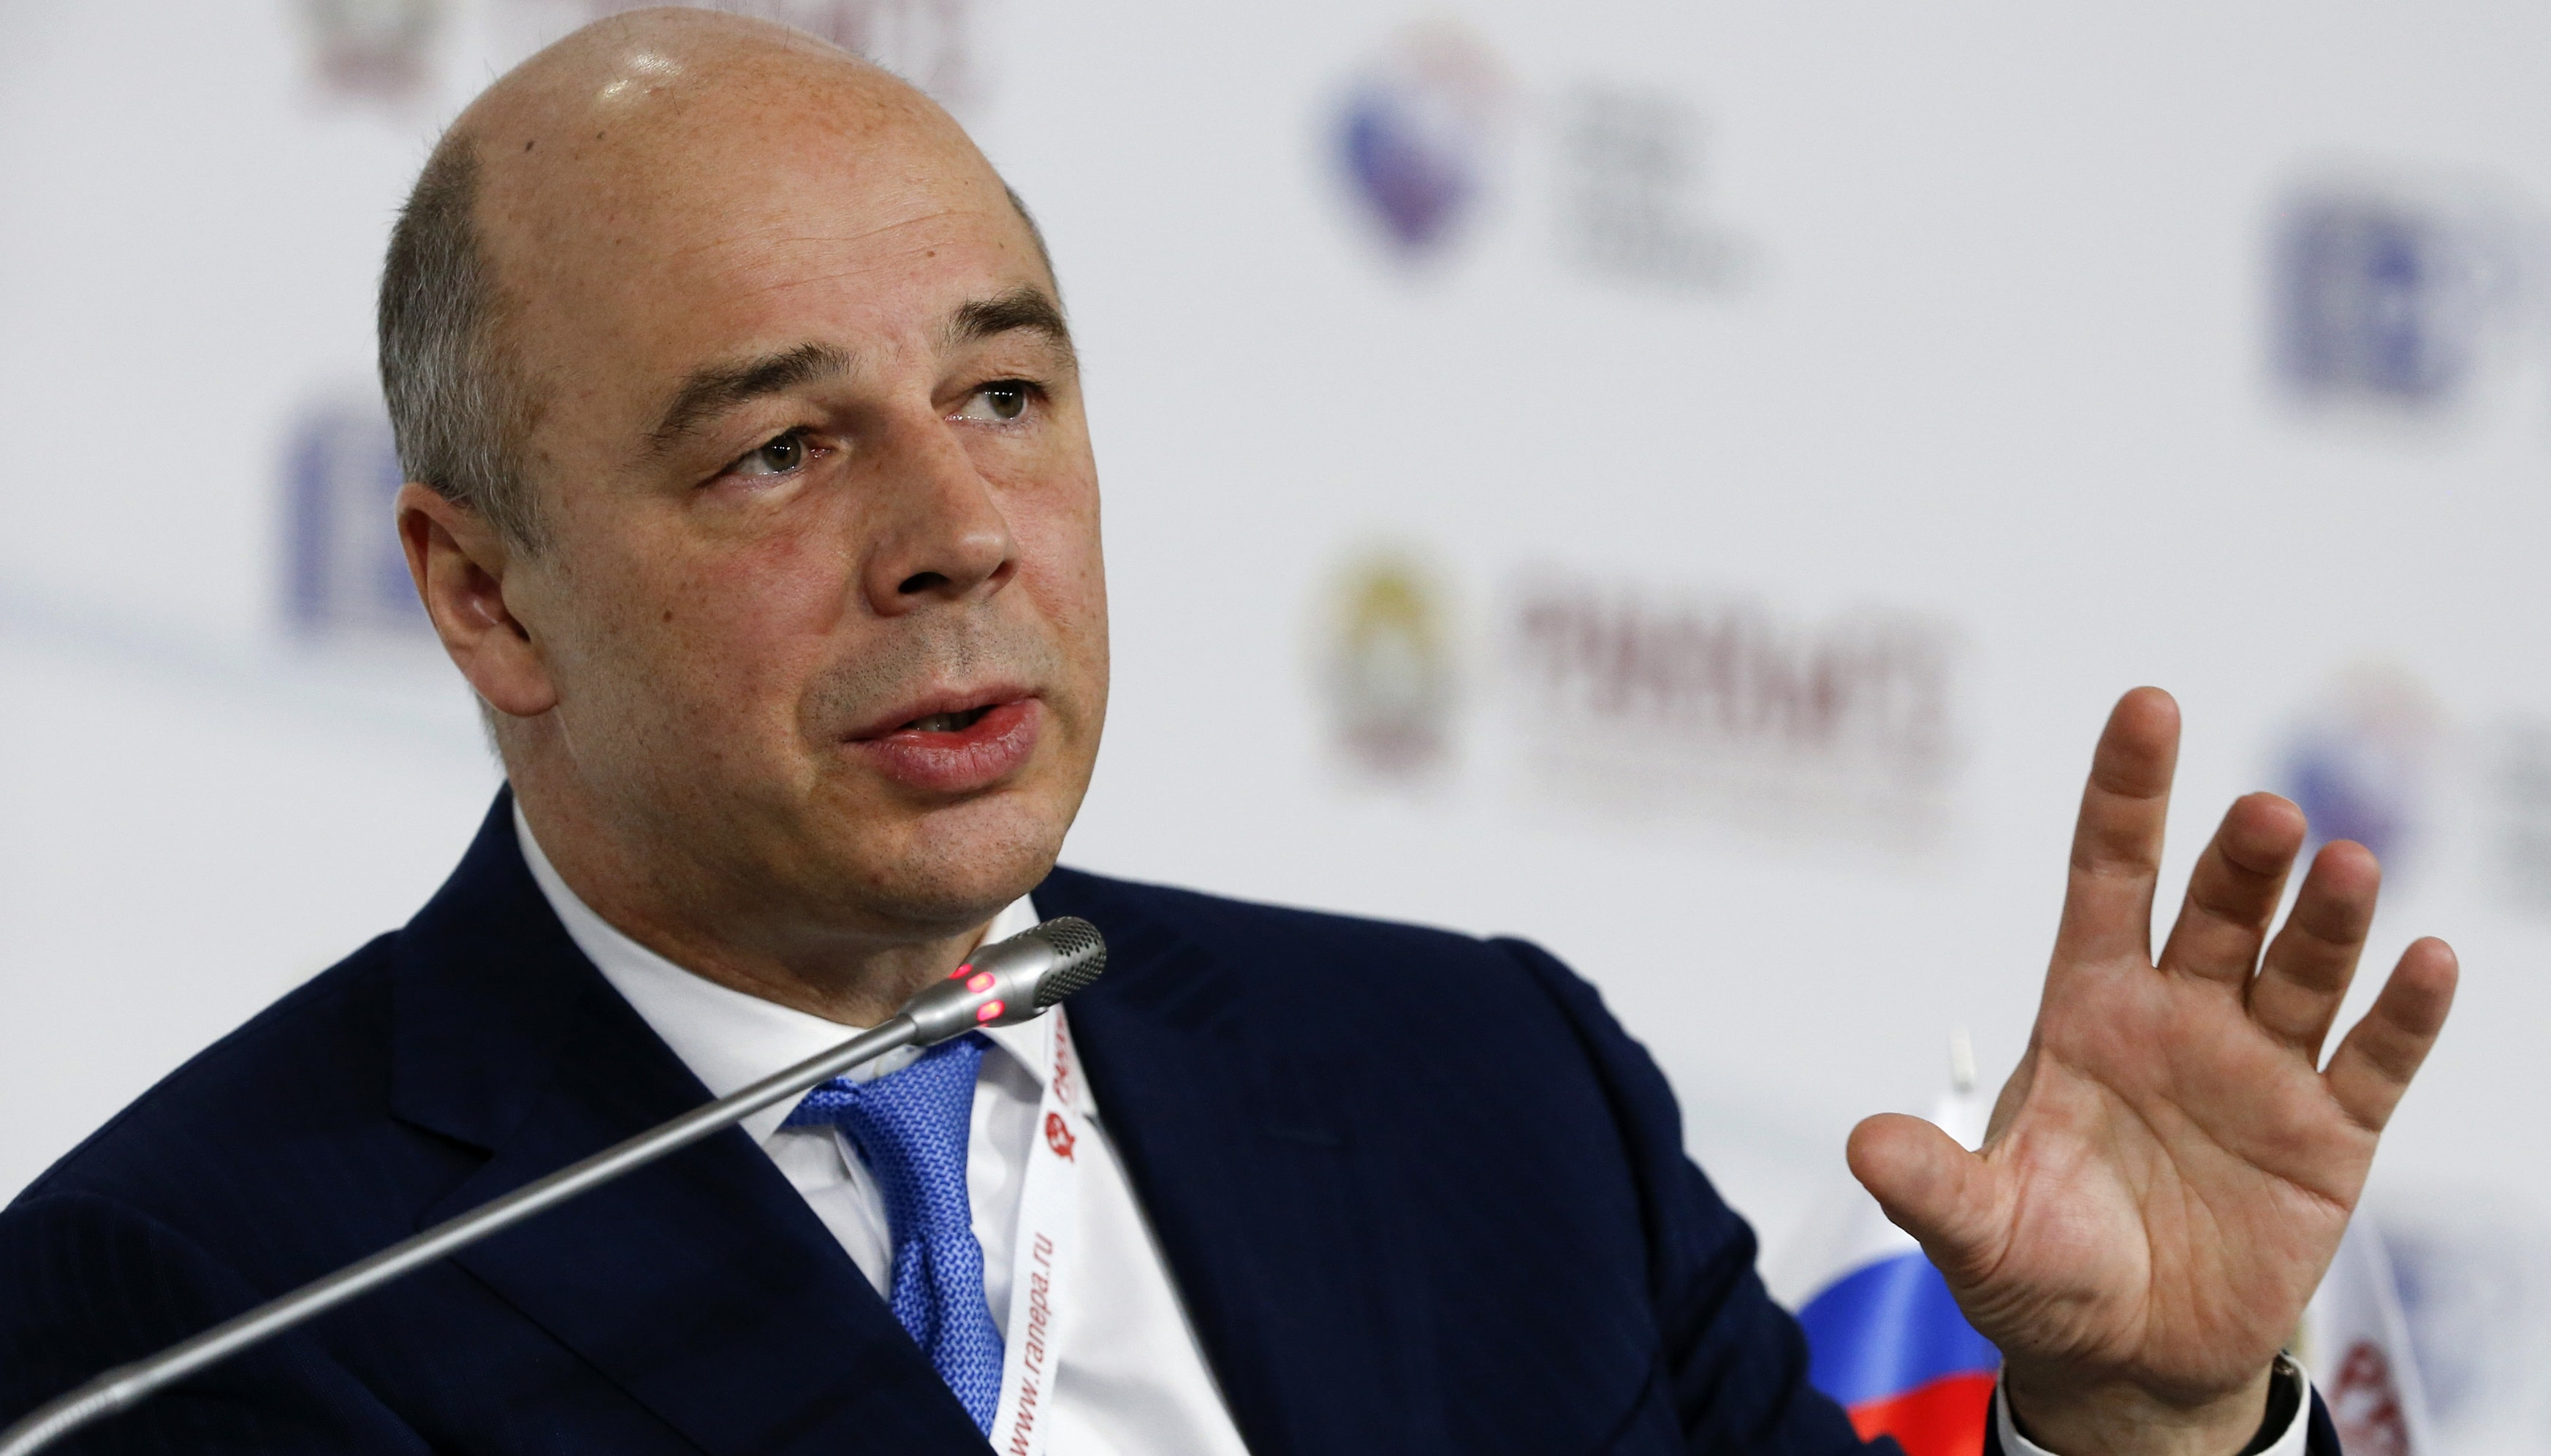 Anton Siluanov gave a forecast about the price of oil